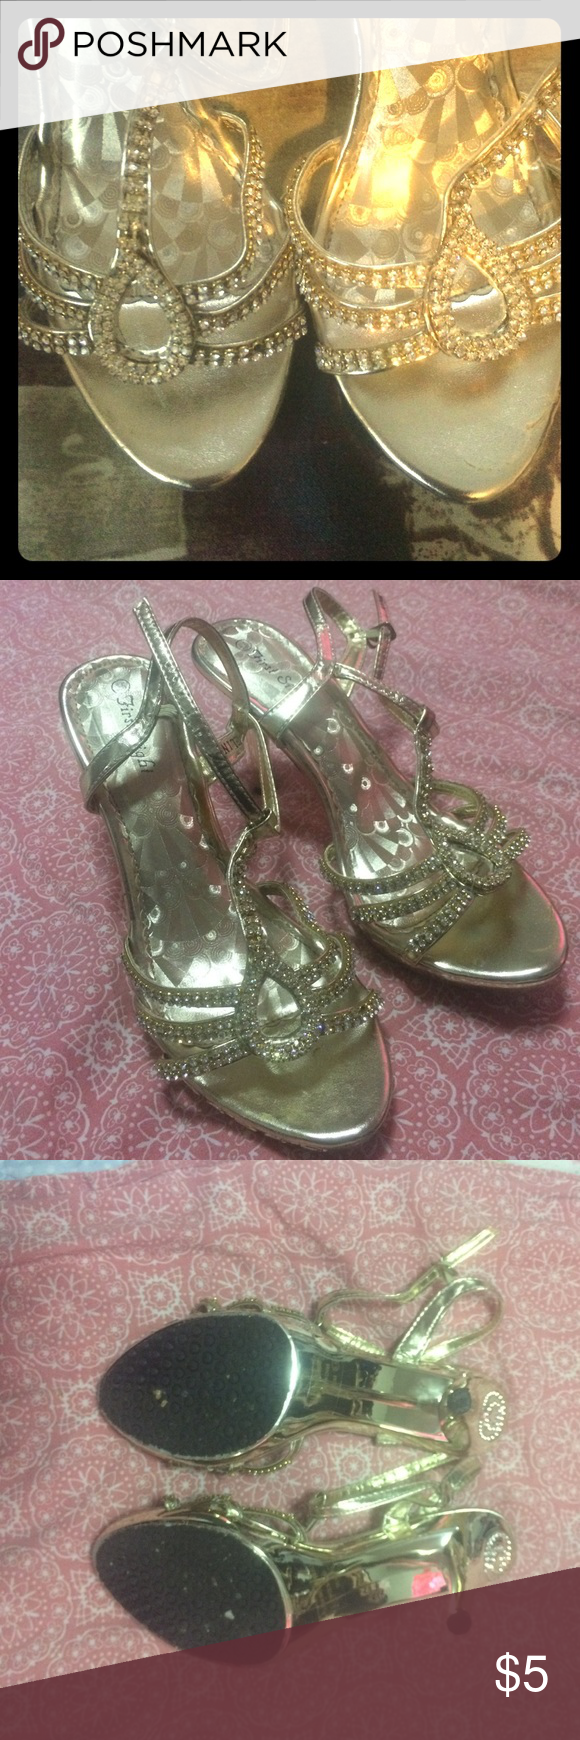 BEAUTIFUL GOLD HEELS defect: one shoe is missing the shoe belt refer to picture :other than that in great condition worn only once Shoes Heels